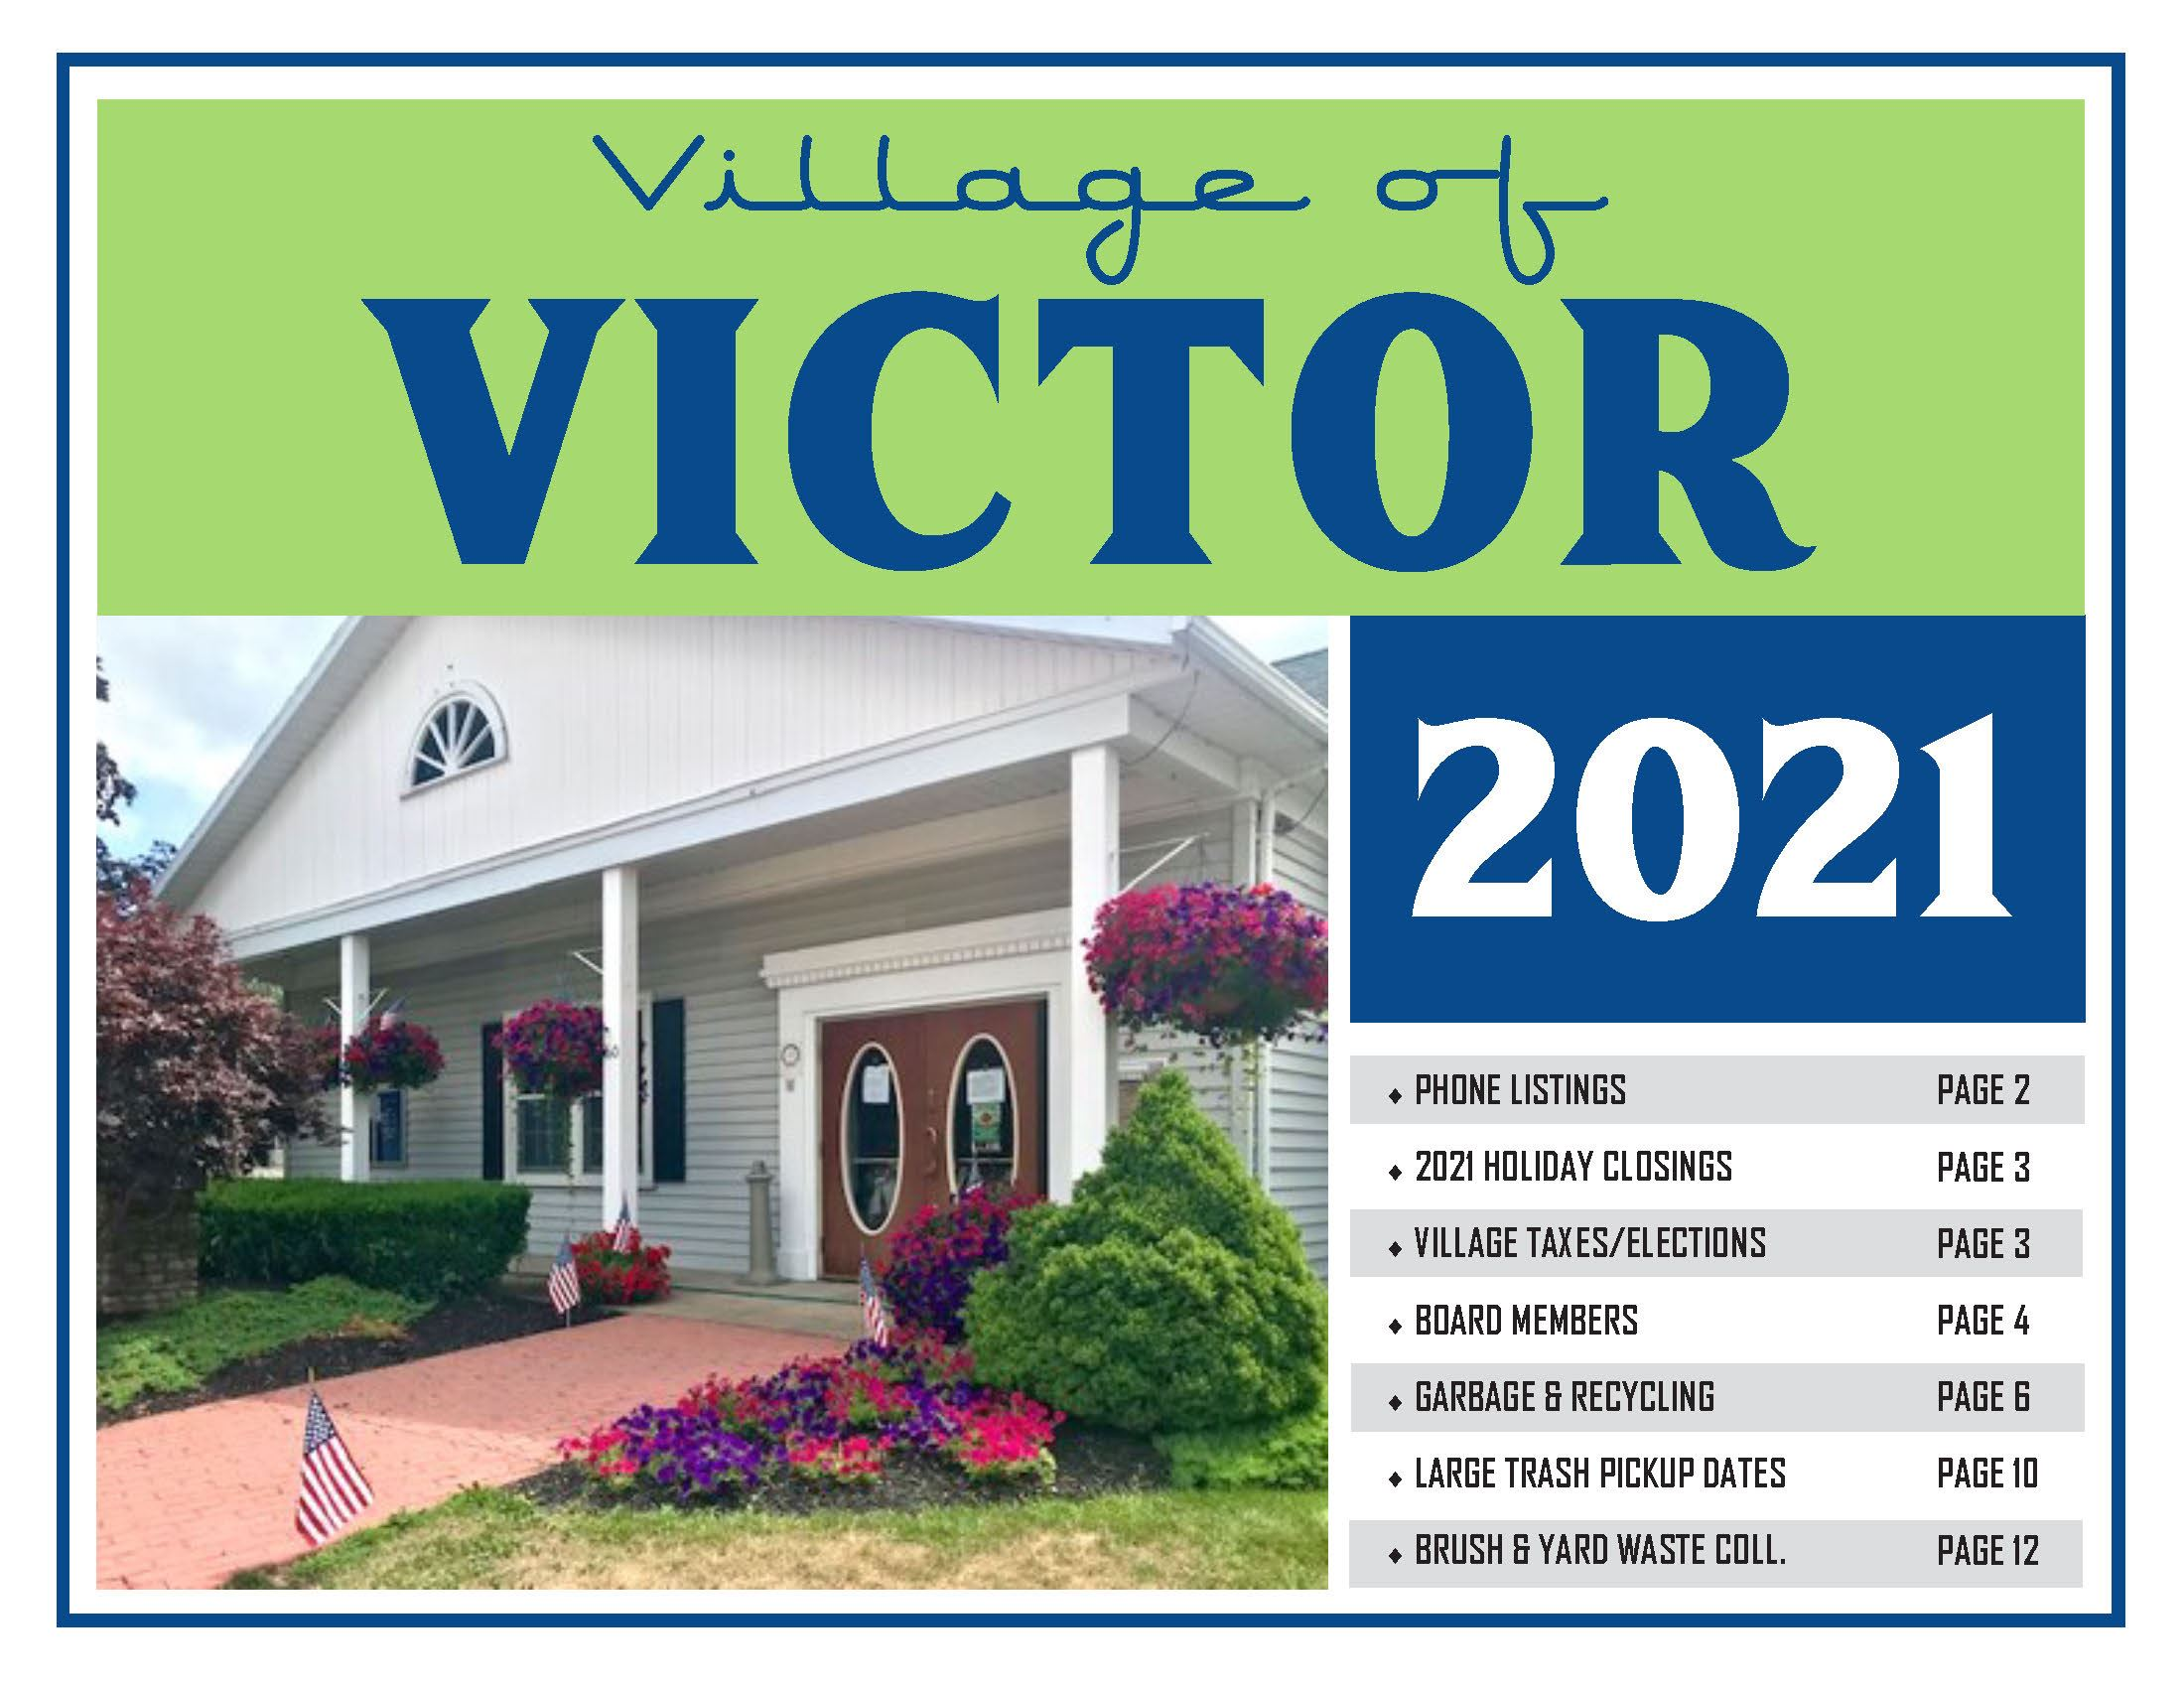 Village Calendar 2021 Cover picture of village hall with flowers